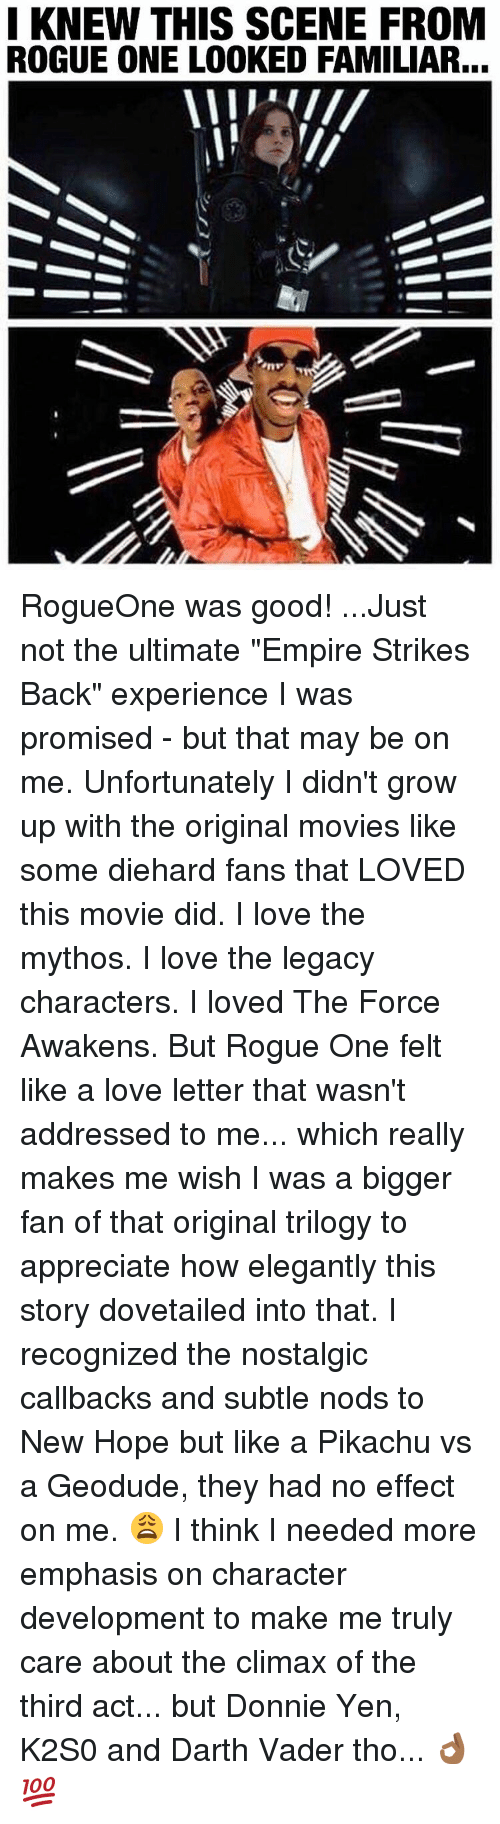 """Darth Vader, Growing Up, and Memes: I KNEW THIS SCENE FROM  ROGUE ONE LOOKED FAMILIAR... RogueOne was good! ...Just not the ultimate """"Empire Strikes Back"""" experience I was promised - but that may be on me. Unfortunately I didn't grow up with the original movies like some diehard fans that LOVED this movie did. I love the mythos. I love the legacy characters. I loved The Force Awakens. But Rogue One felt like a love letter that wasn't addressed to me... which really makes me wish I was a bigger fan of that original trilogy to appreciate how elegantly this story dovetailed into that. I recognized the nostalgic callbacks and subtle nods to New Hope but like a Pikachu vs a Geodude, they had no effect on me. 😩 I think I needed more emphasis on character development to make me truly care about the climax of the third act... but Donnie Yen, K2S0 and Darth Vader tho... 👌🏾💯"""